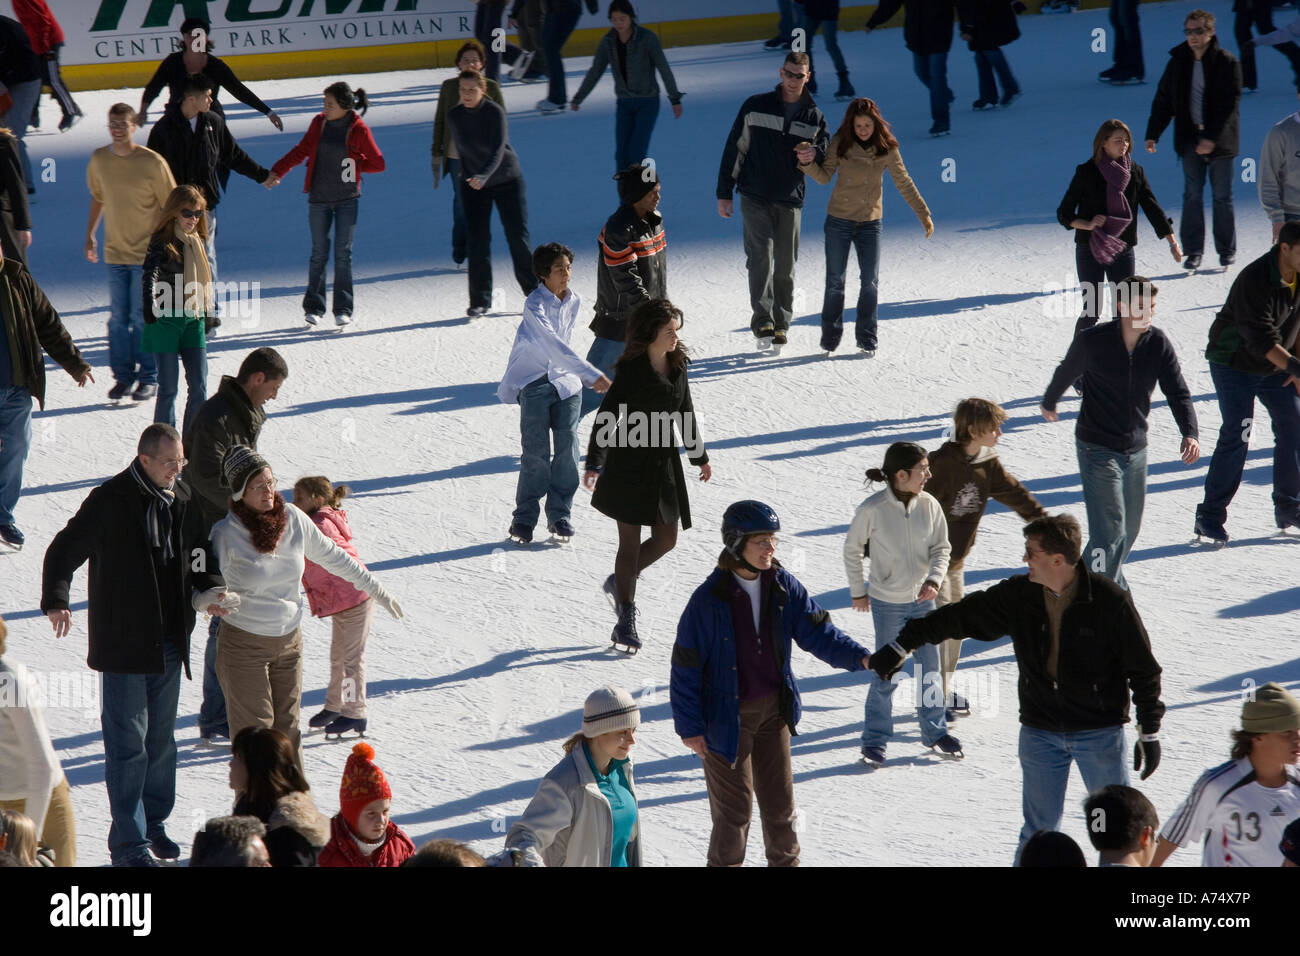 skaters on the ice - Stock Image